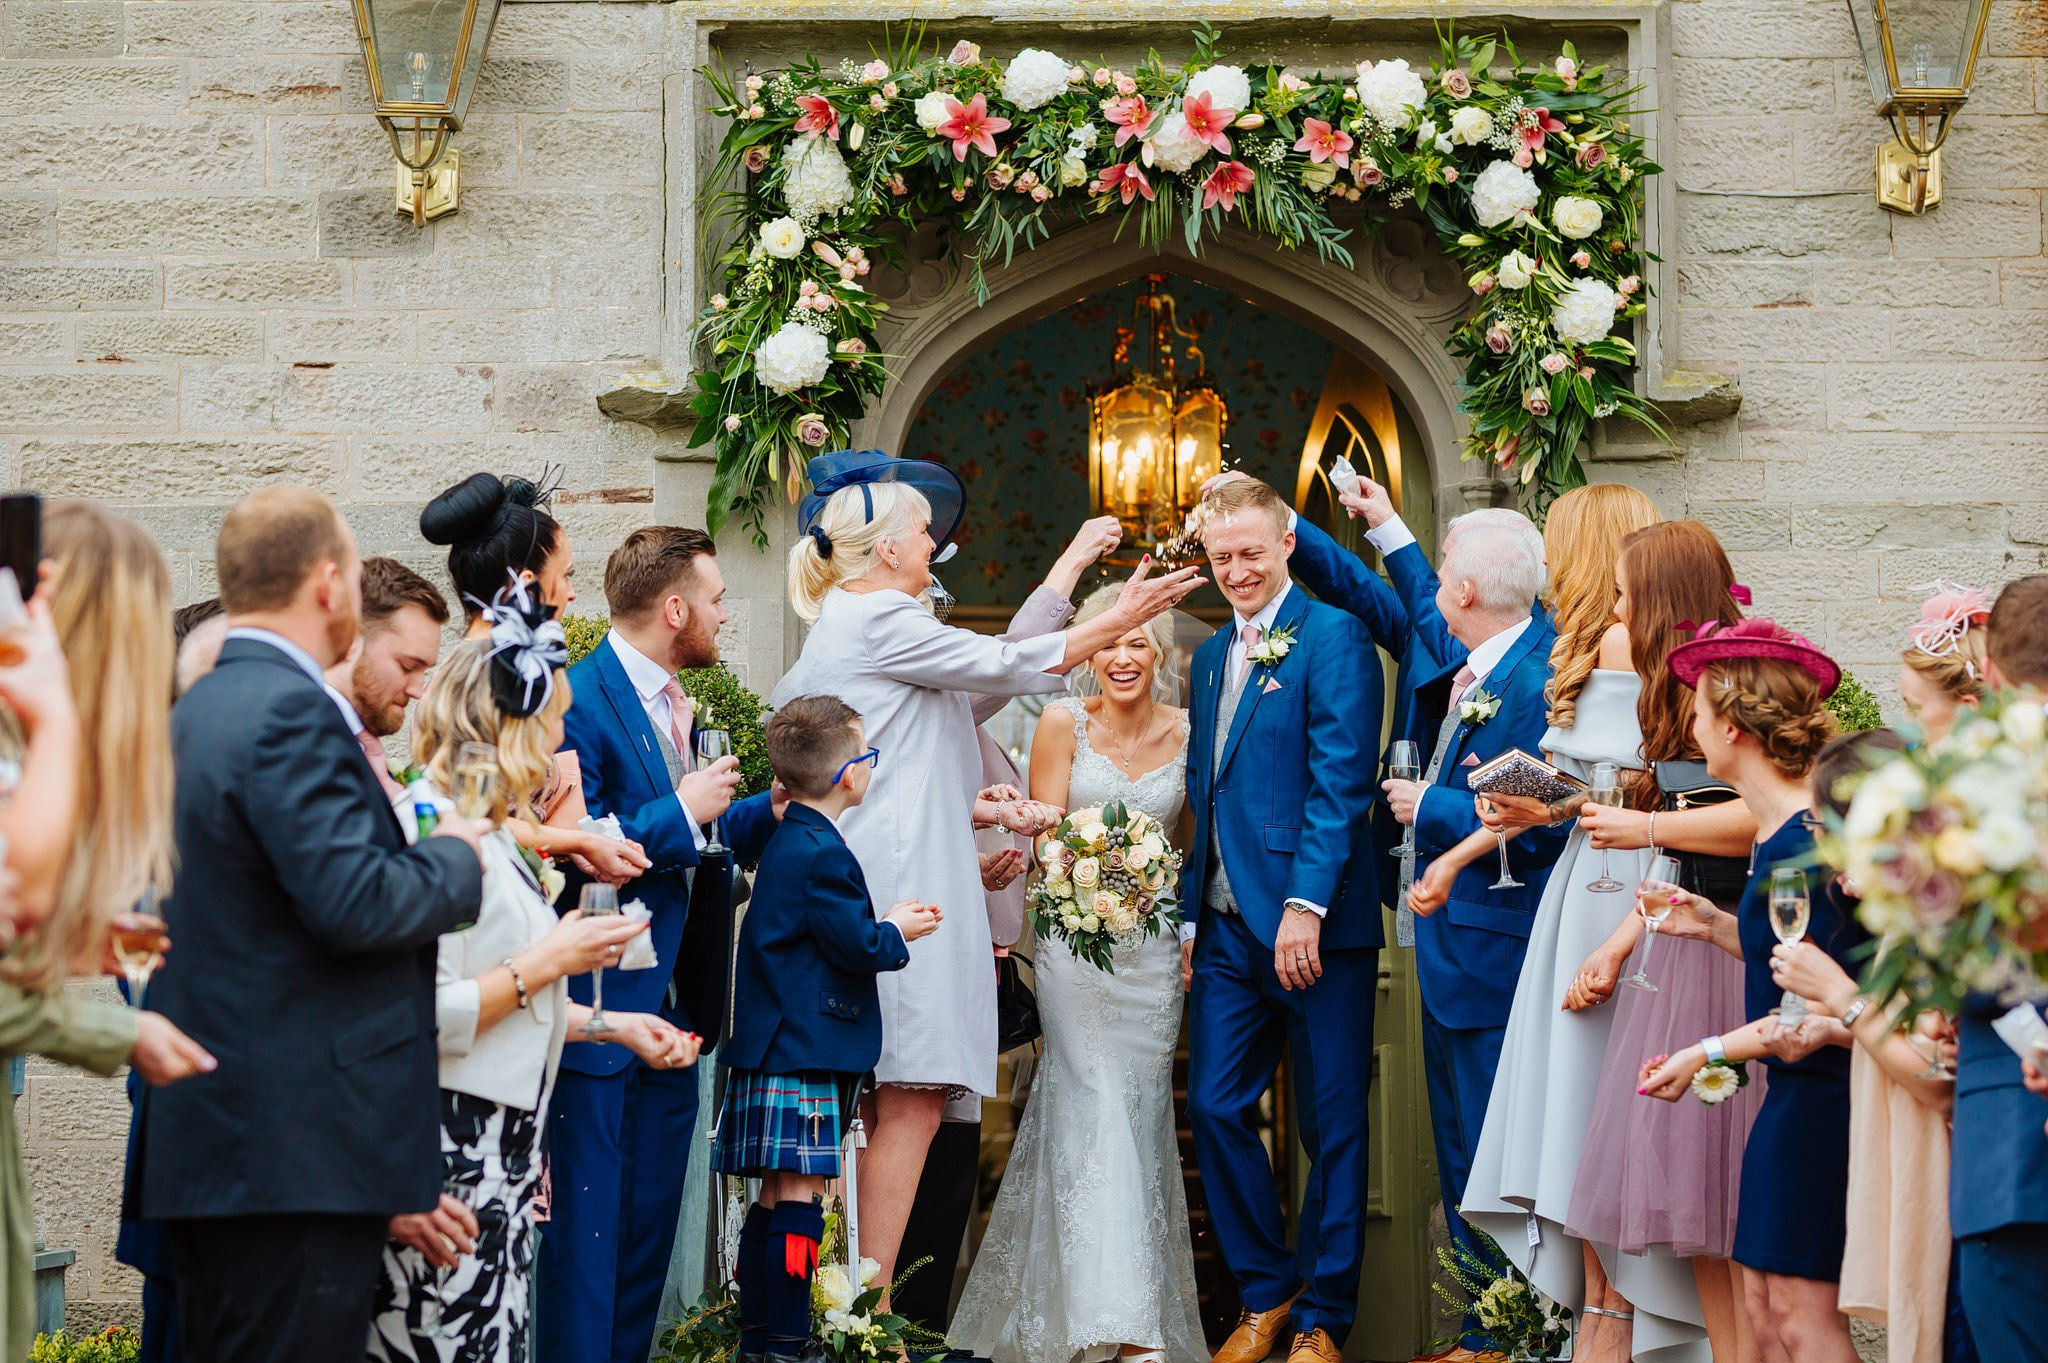 Sigma 85mm F1.4 ART review vs Wedding Photography 2